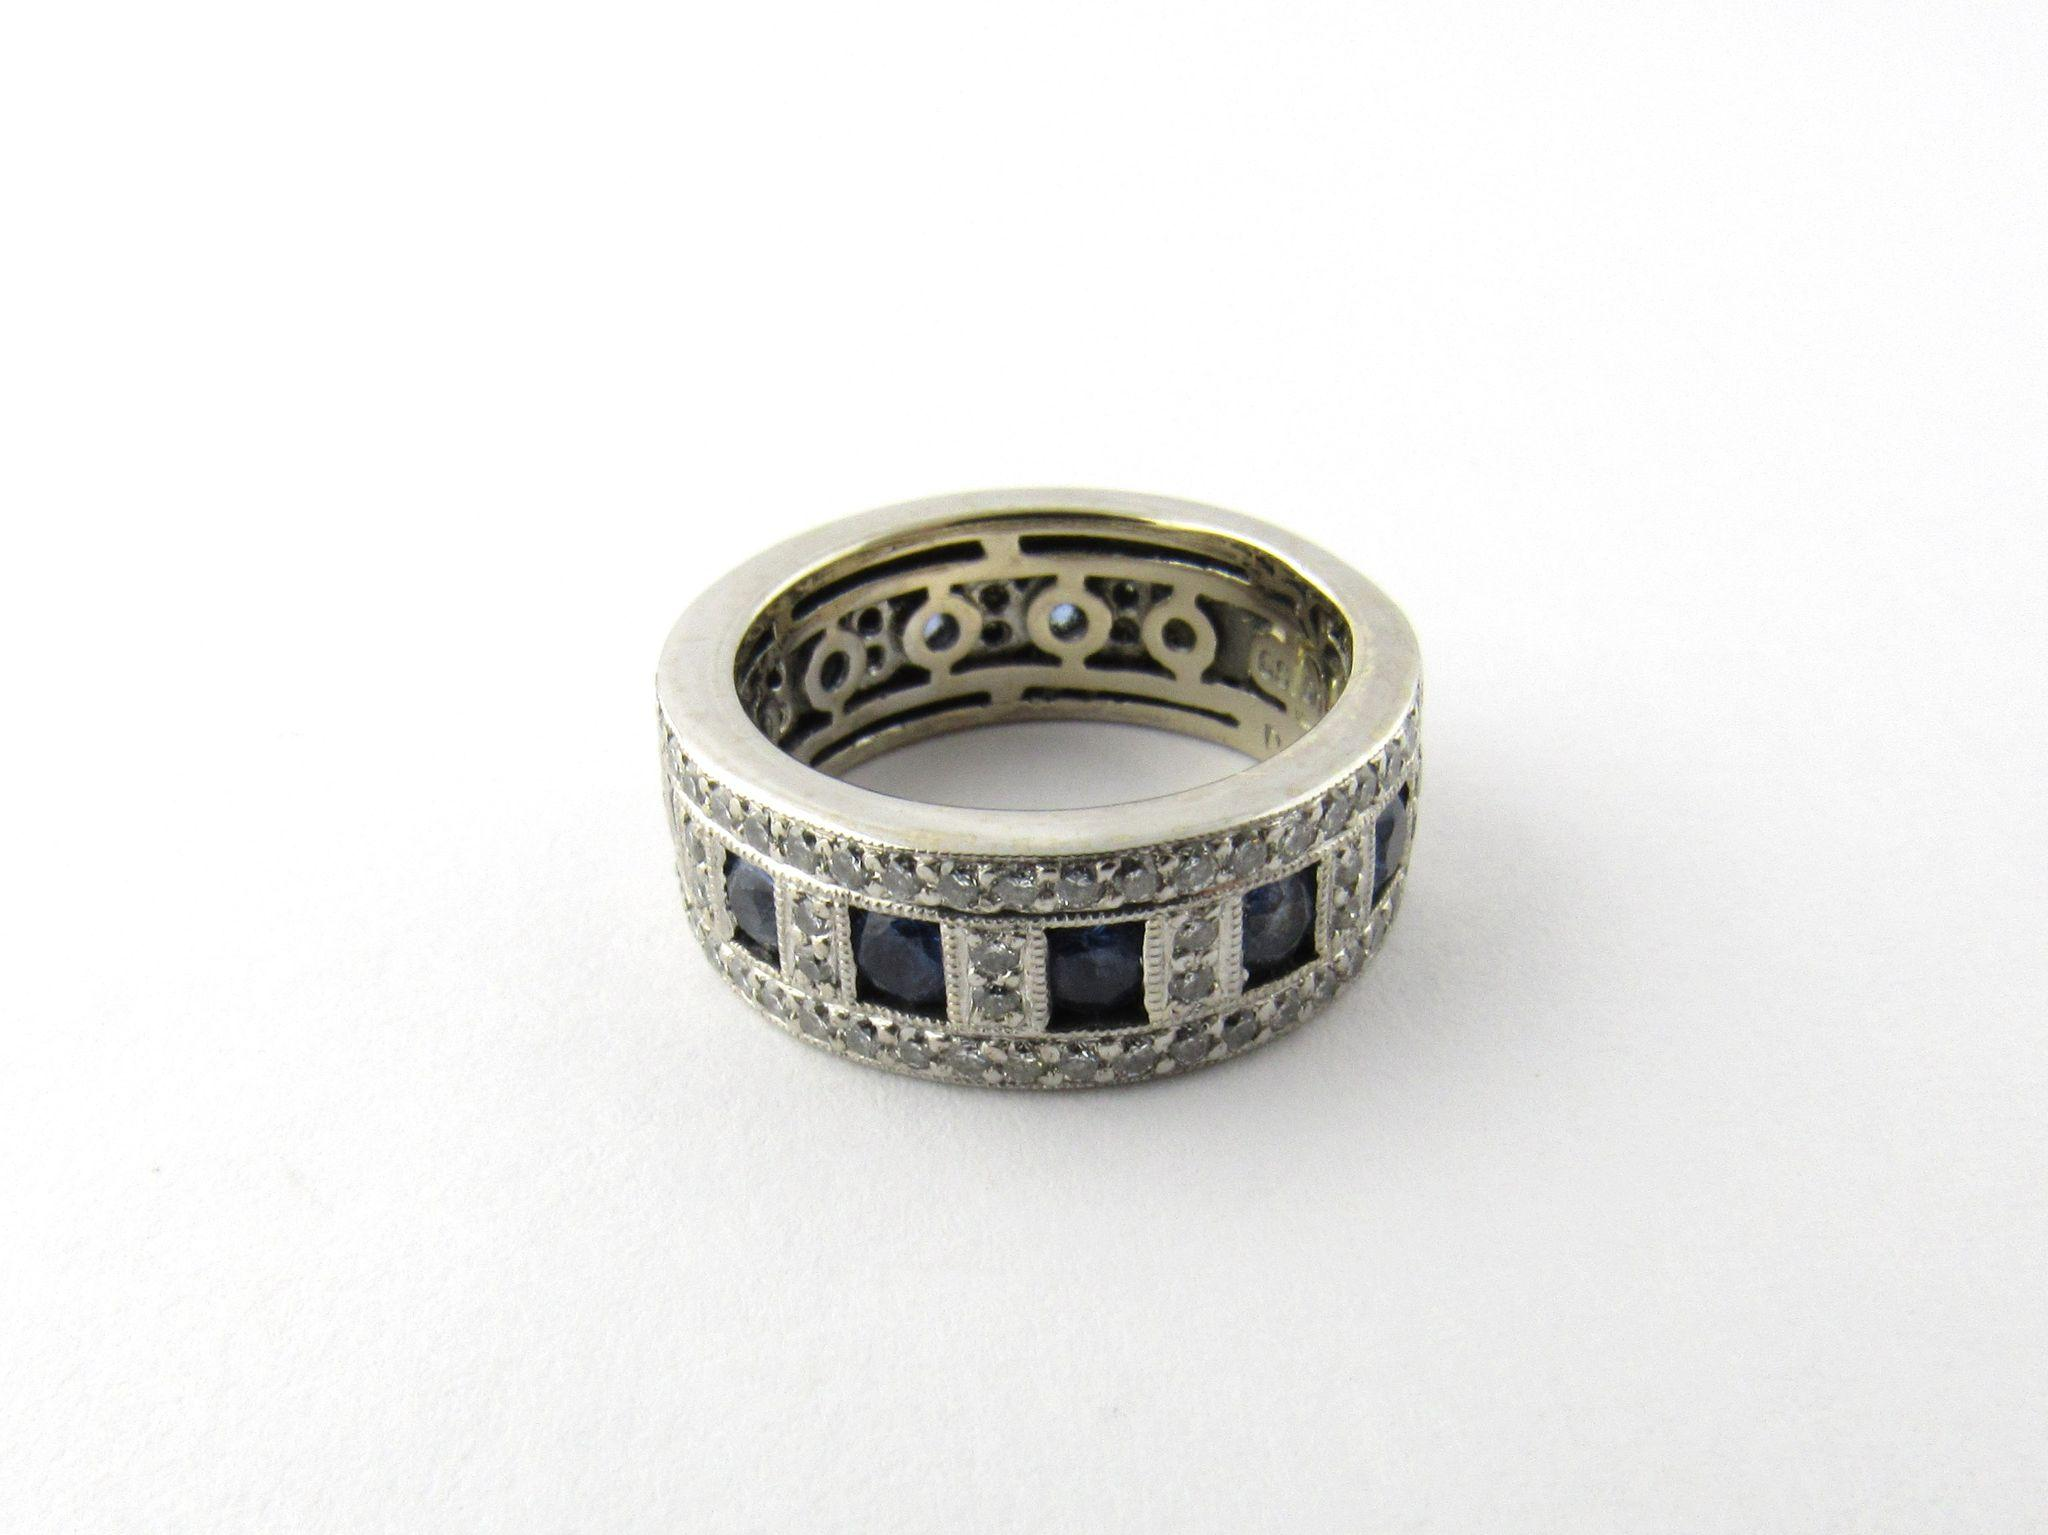 Vintage 24 Karat White Gold Sapphire and Diamond Ring Size 4 5 from ctgoldcus